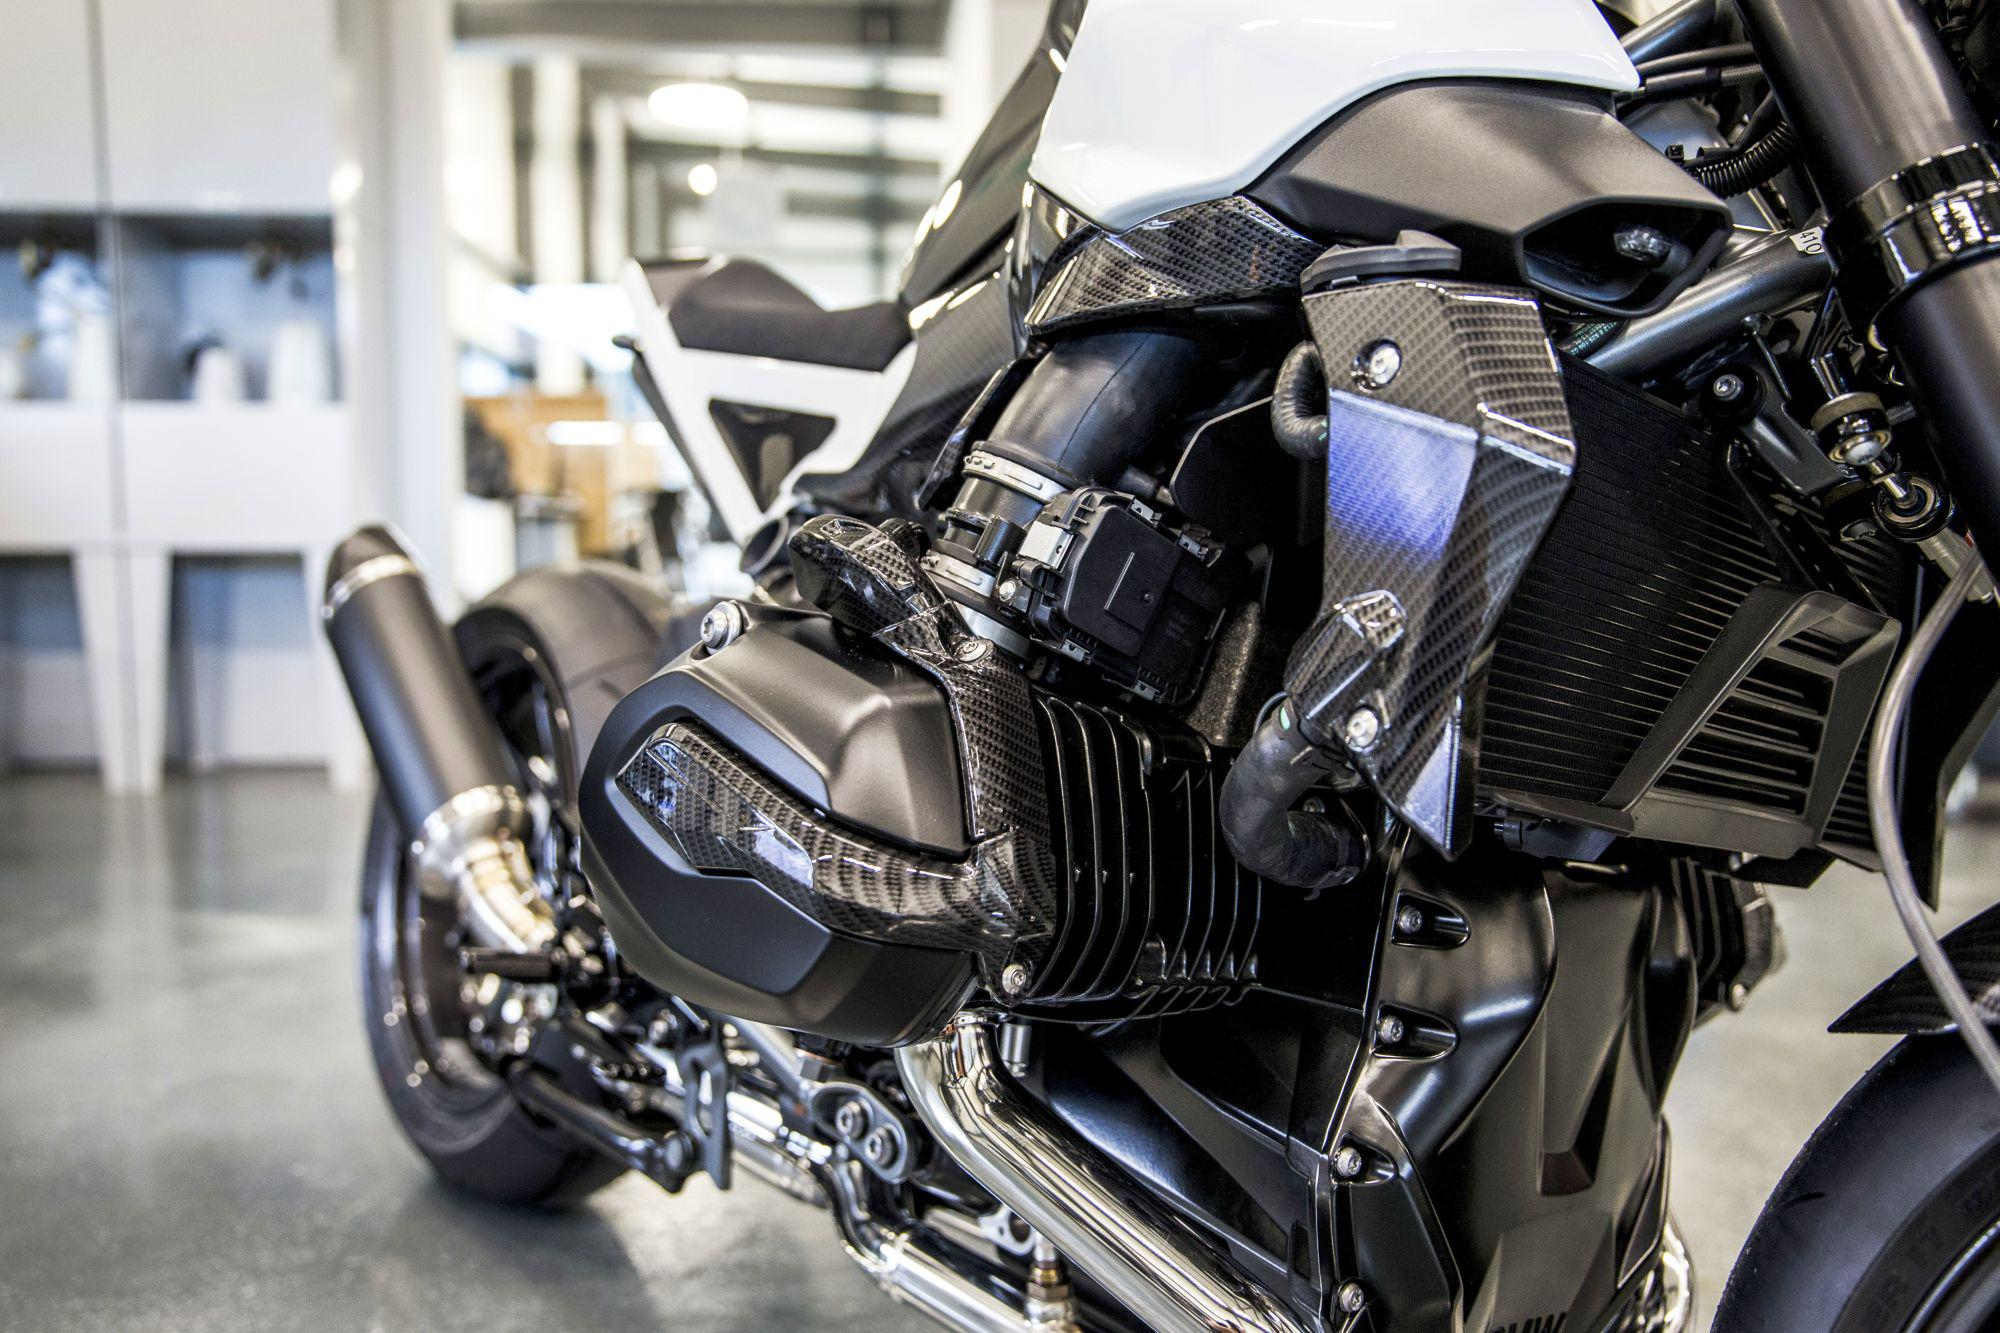 bmw-r1200r-streetfighter--16 Extraordinary Bmw R 1200 R Street Fighter Cars Trend